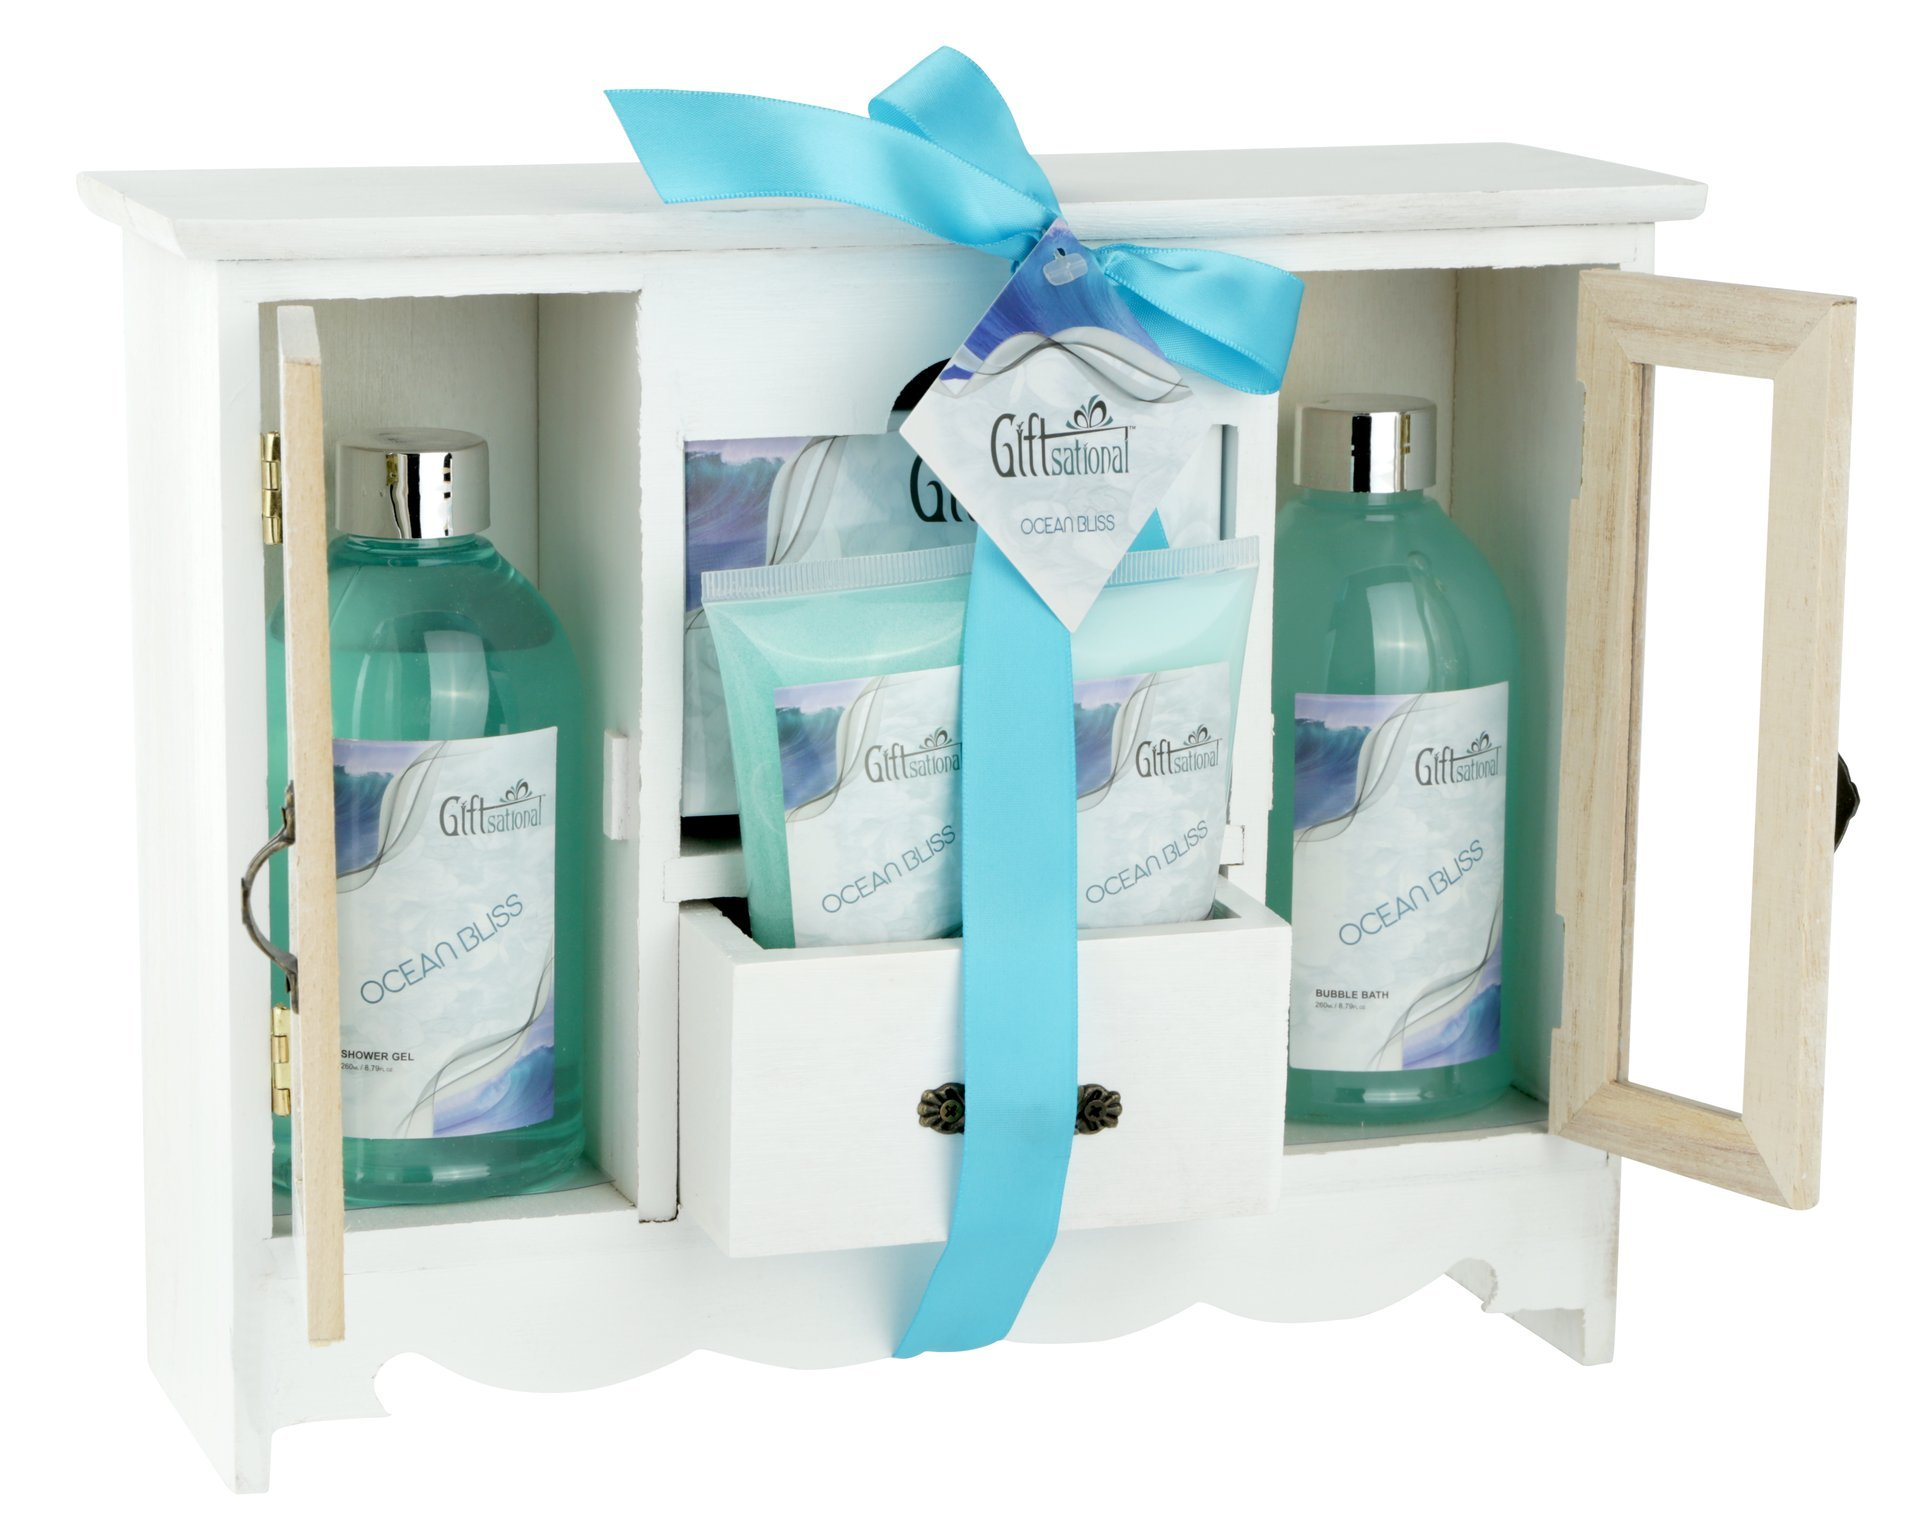 Spa Gift Basket With Refreshing Ocean Bliss fragrance - Gift Set Includes Shower Gel, Bubble Bath, Bath Salts And more - Great Graduation, Wedding, Birthday, or Anniversary Gift for Women and Girls